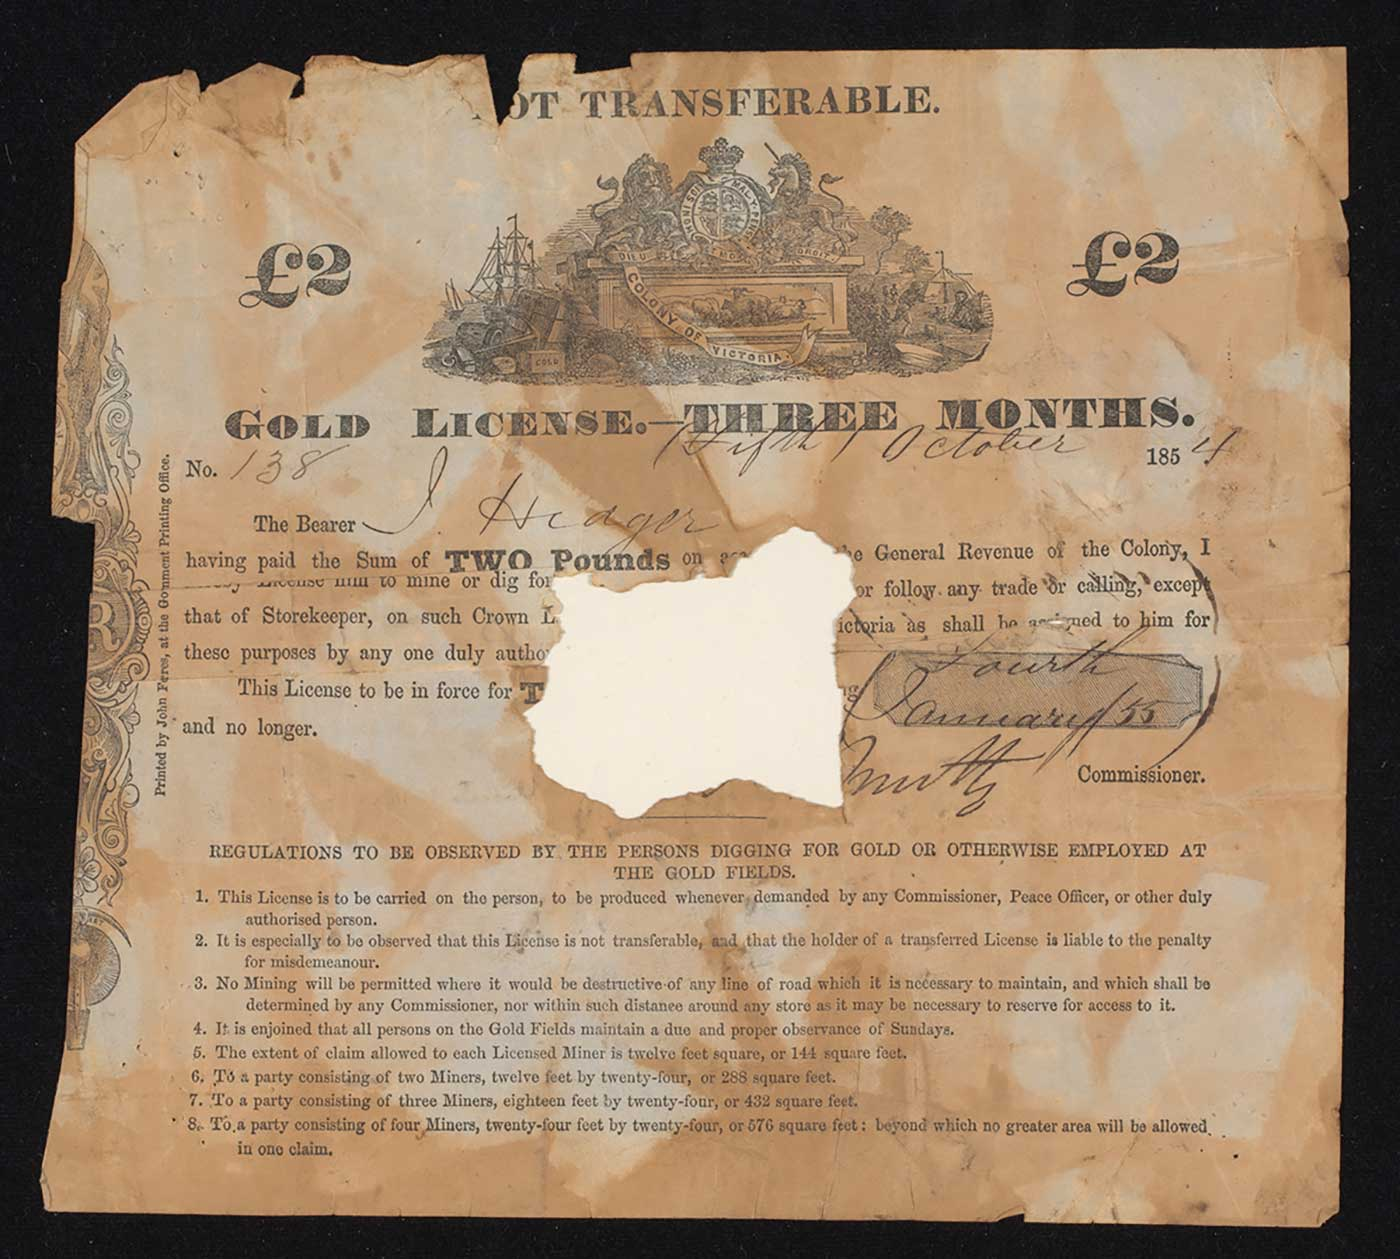 Photograph of a 'GOLD LICENSE' printed on paper, which has been folded and torn around the edges and has a section missing at the centre. A 'Colony of Victoria' coat of arms is centre top, wth text underneath. - click to view larger image